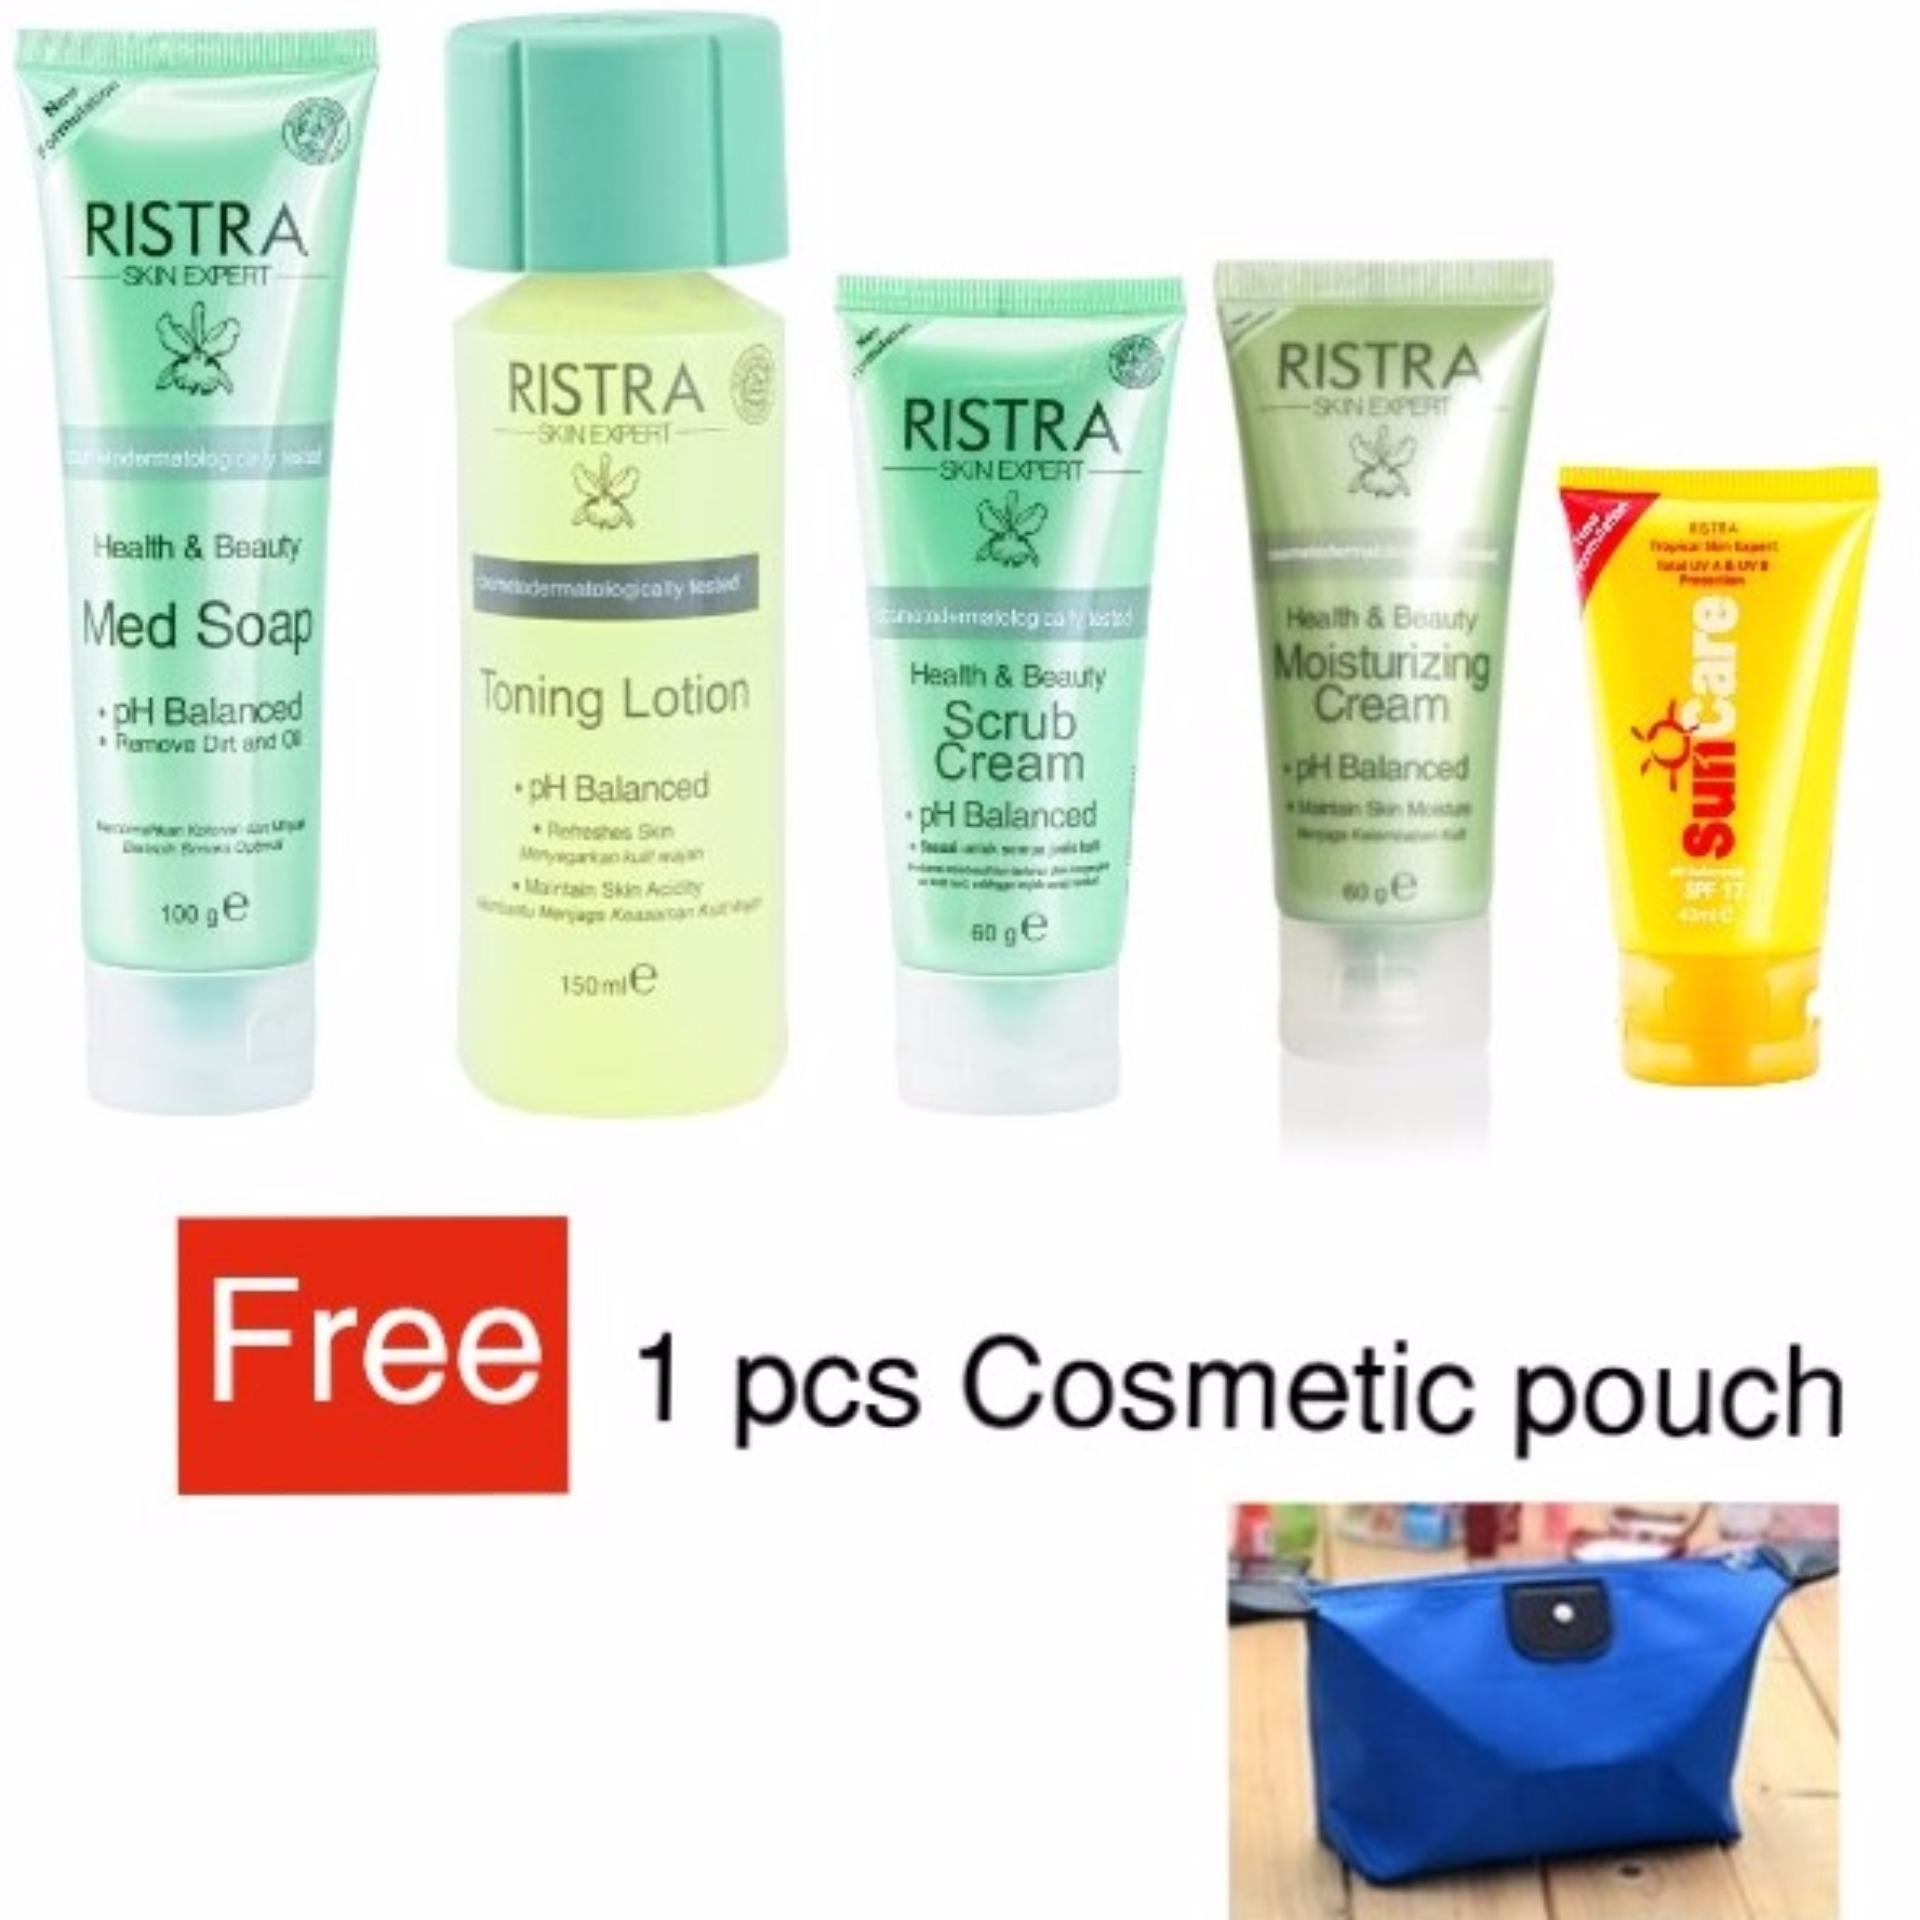 ... Ristra Daily Skin Care Package - Beauty Med soap, Toning,Scrub,Moisturizing, ...